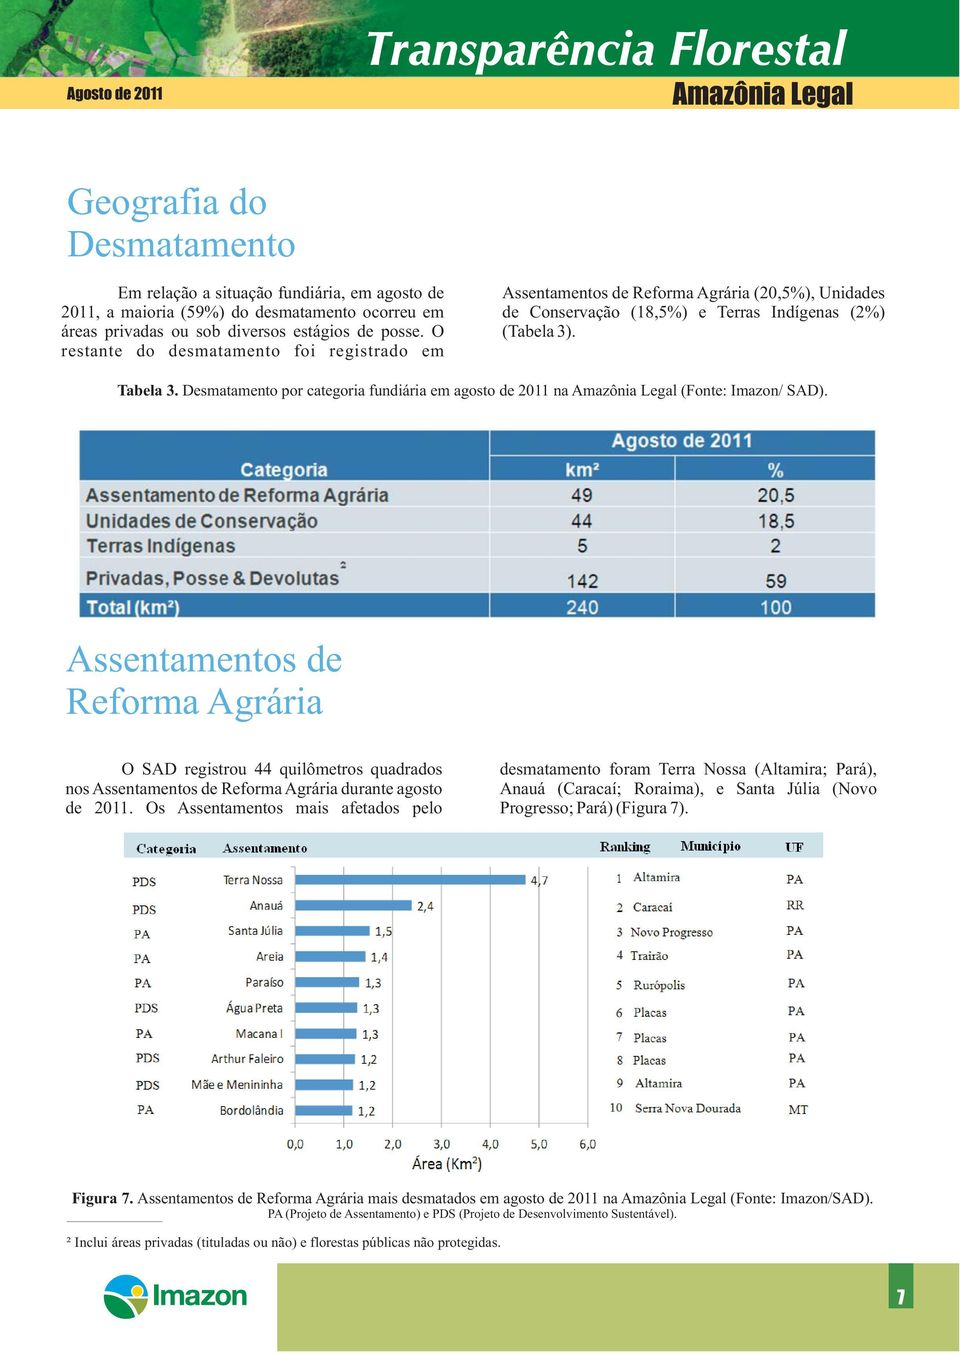 Desmatamento por categoria fundiária em agosto de 2011 na Amazônia Legal (Fonte: Imazon/ SAD).